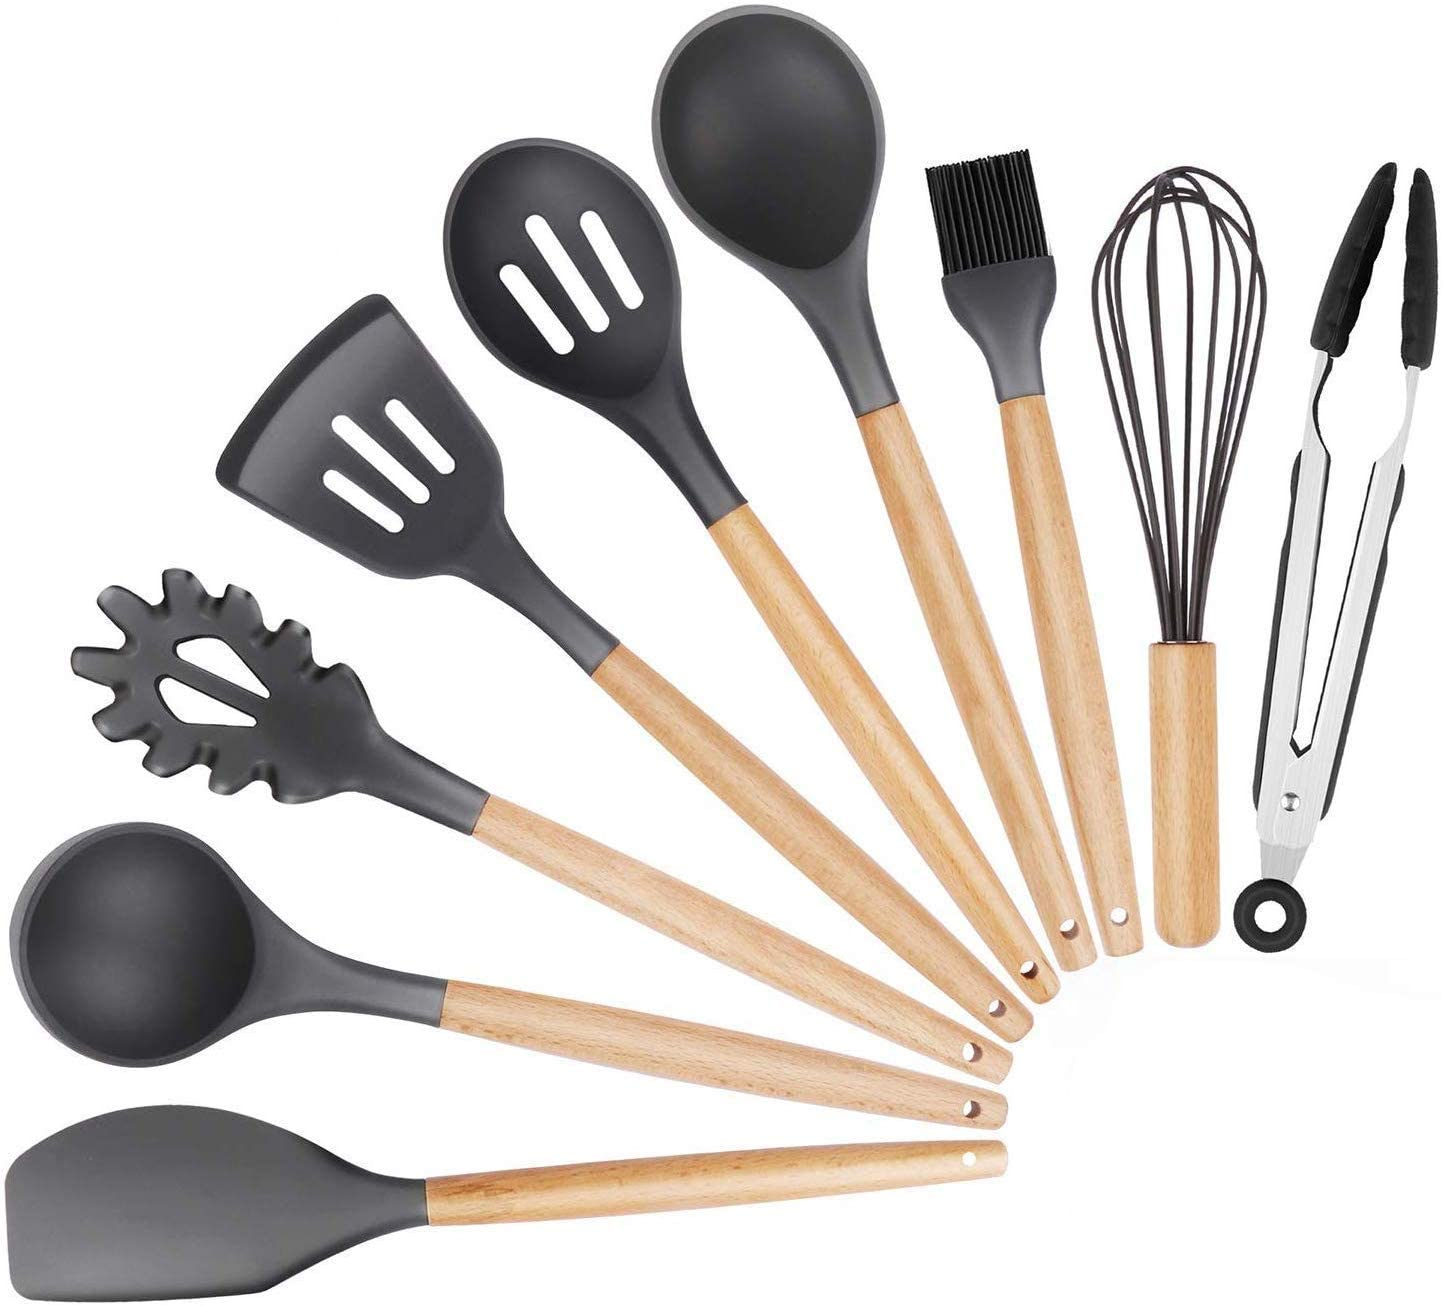 Xiaoai Silicone Kitchen Cooking Utensil Set - 9 Pieces Natural Wooden Handles Cooking Tools Turner Tongs Spatula Spoon for Nonstick Cookware (Black)